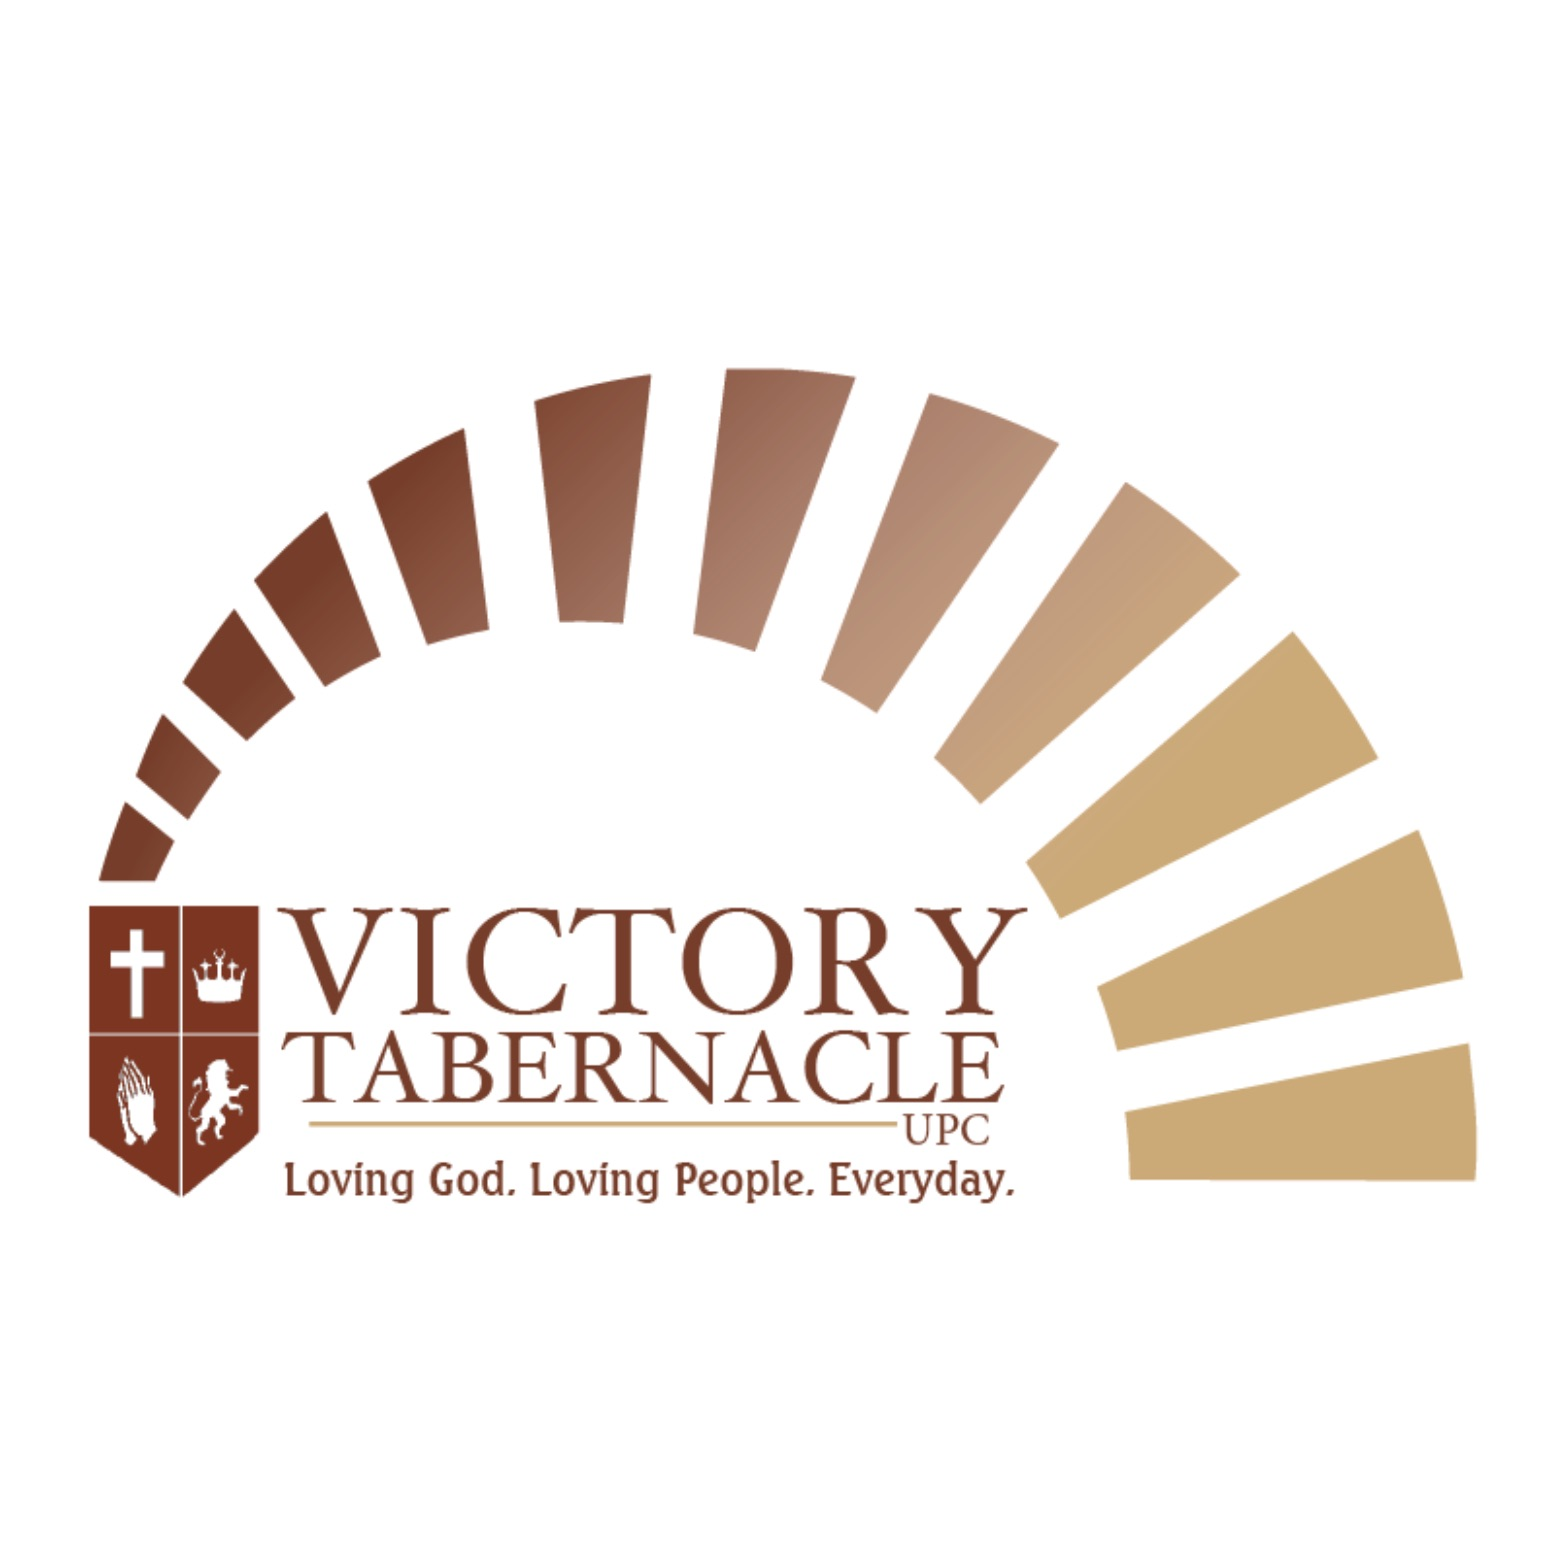 Victory Tabernacle UPC